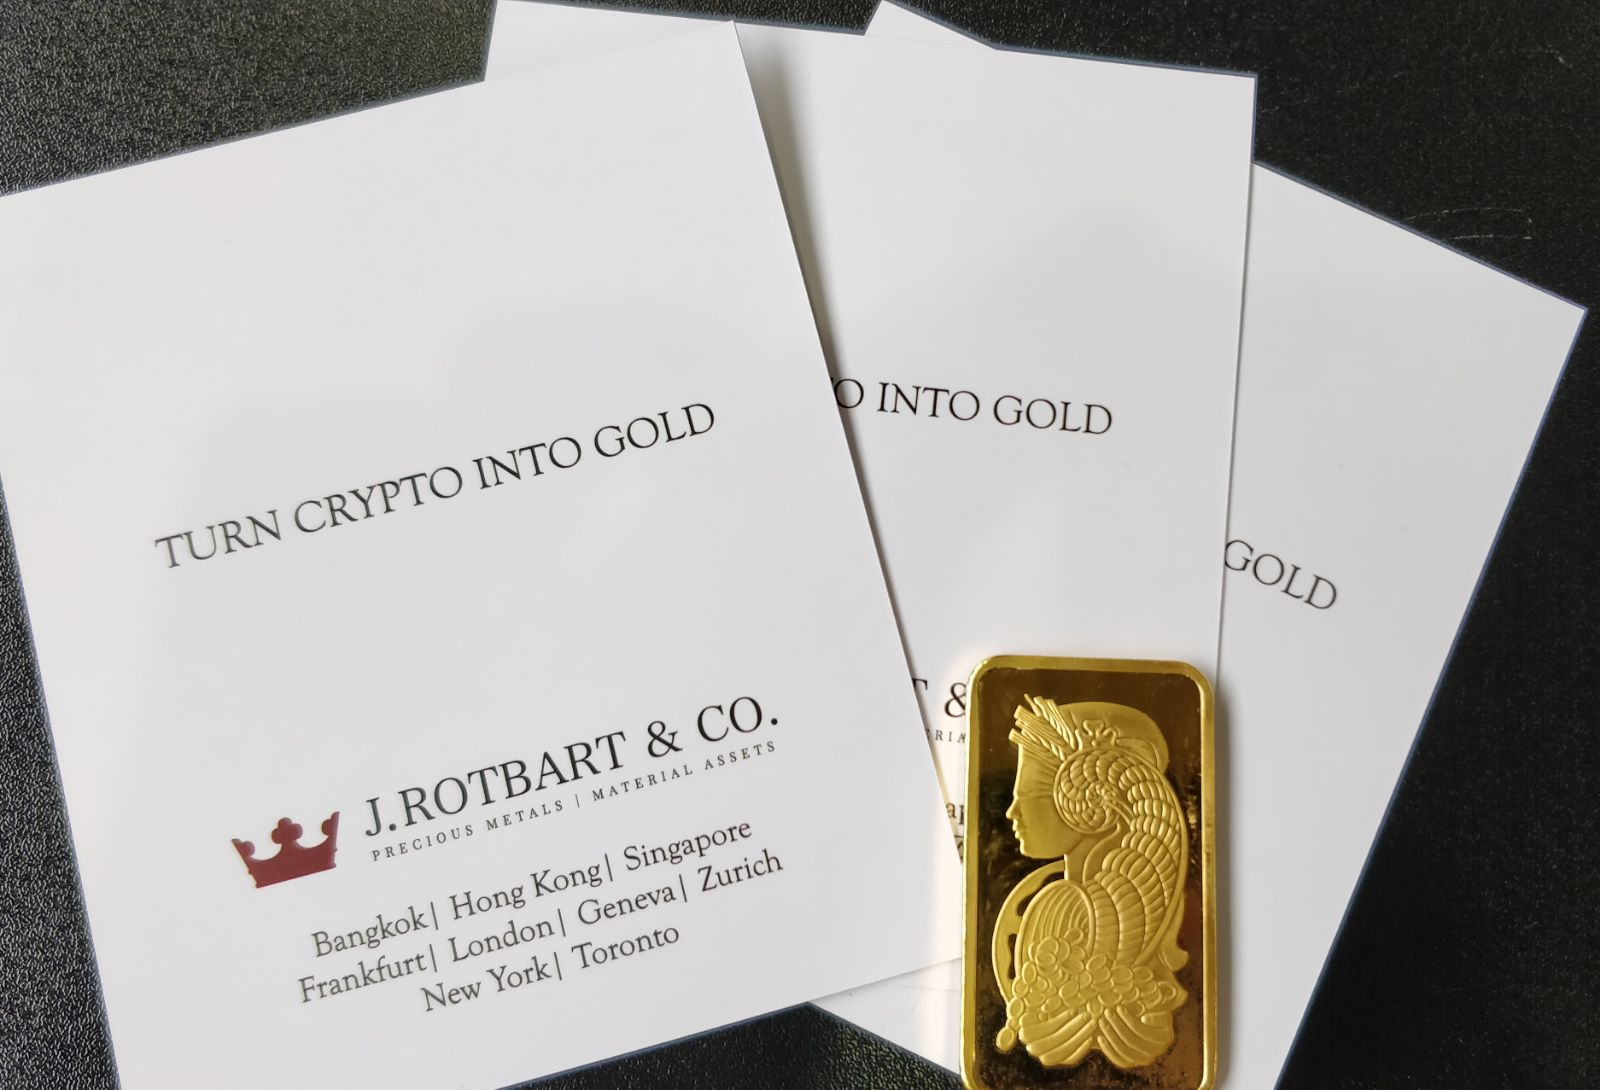 Trading Crypto and Gold